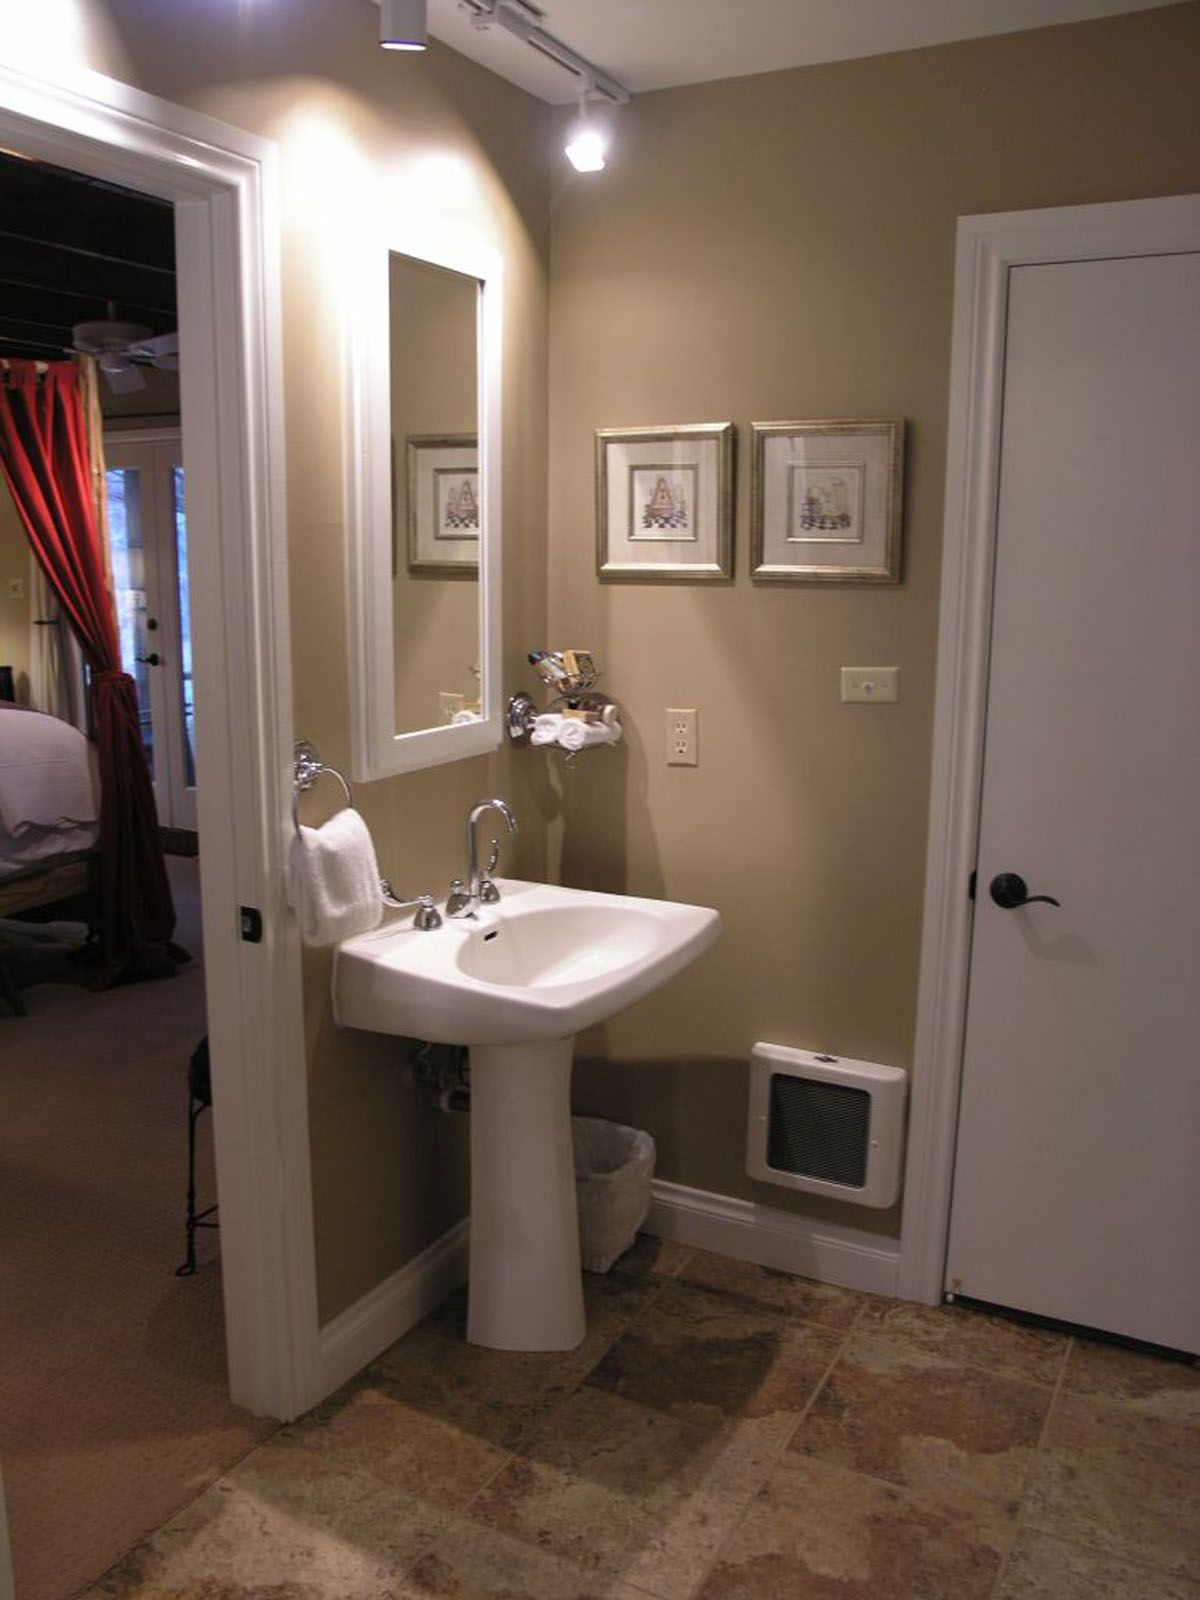 Smallbathroomidease28093Homedecoratingchoosingpaint Magnificent Painting Small Bathroom Review